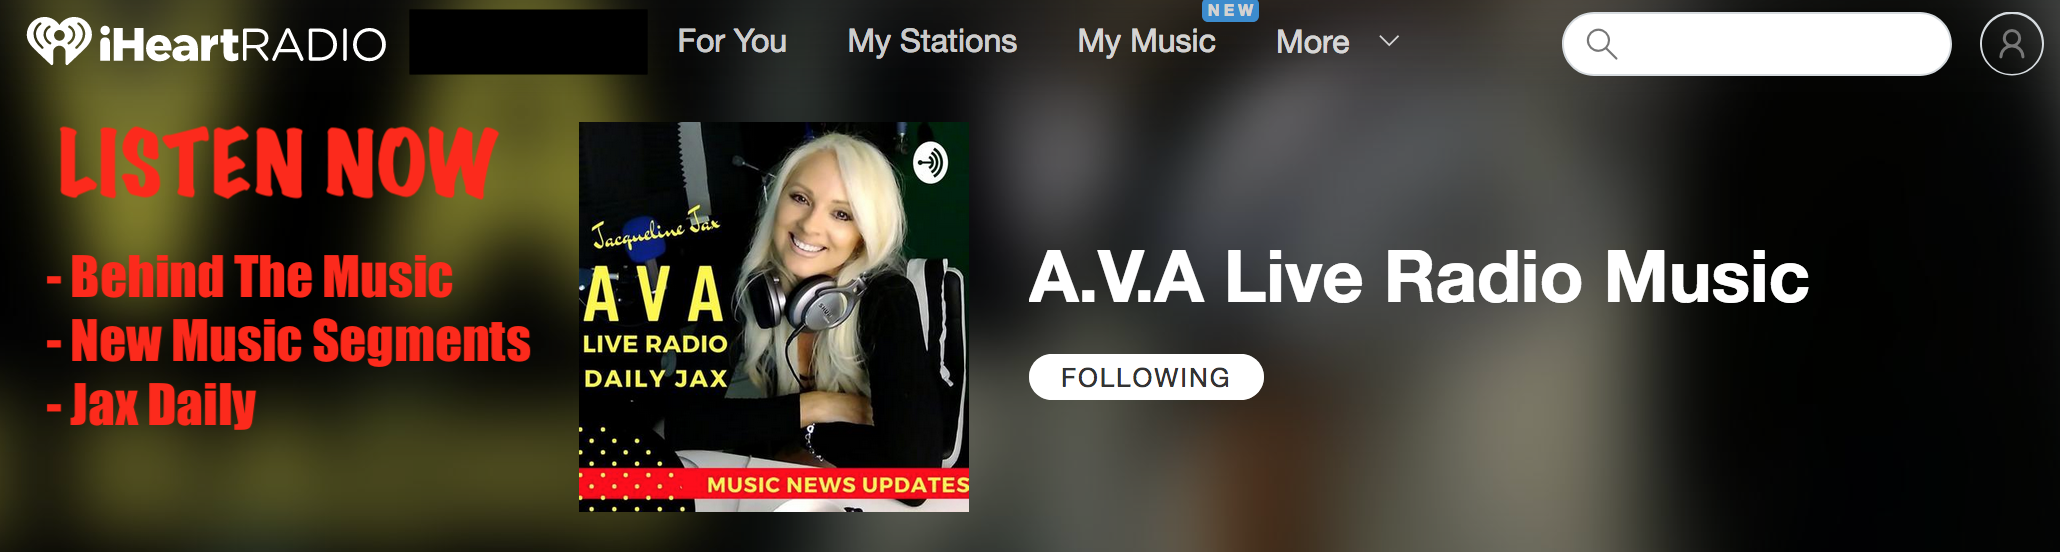 https://www.iheart.com/podcast/269-AVA-Live-Radio-Musi-29336730/